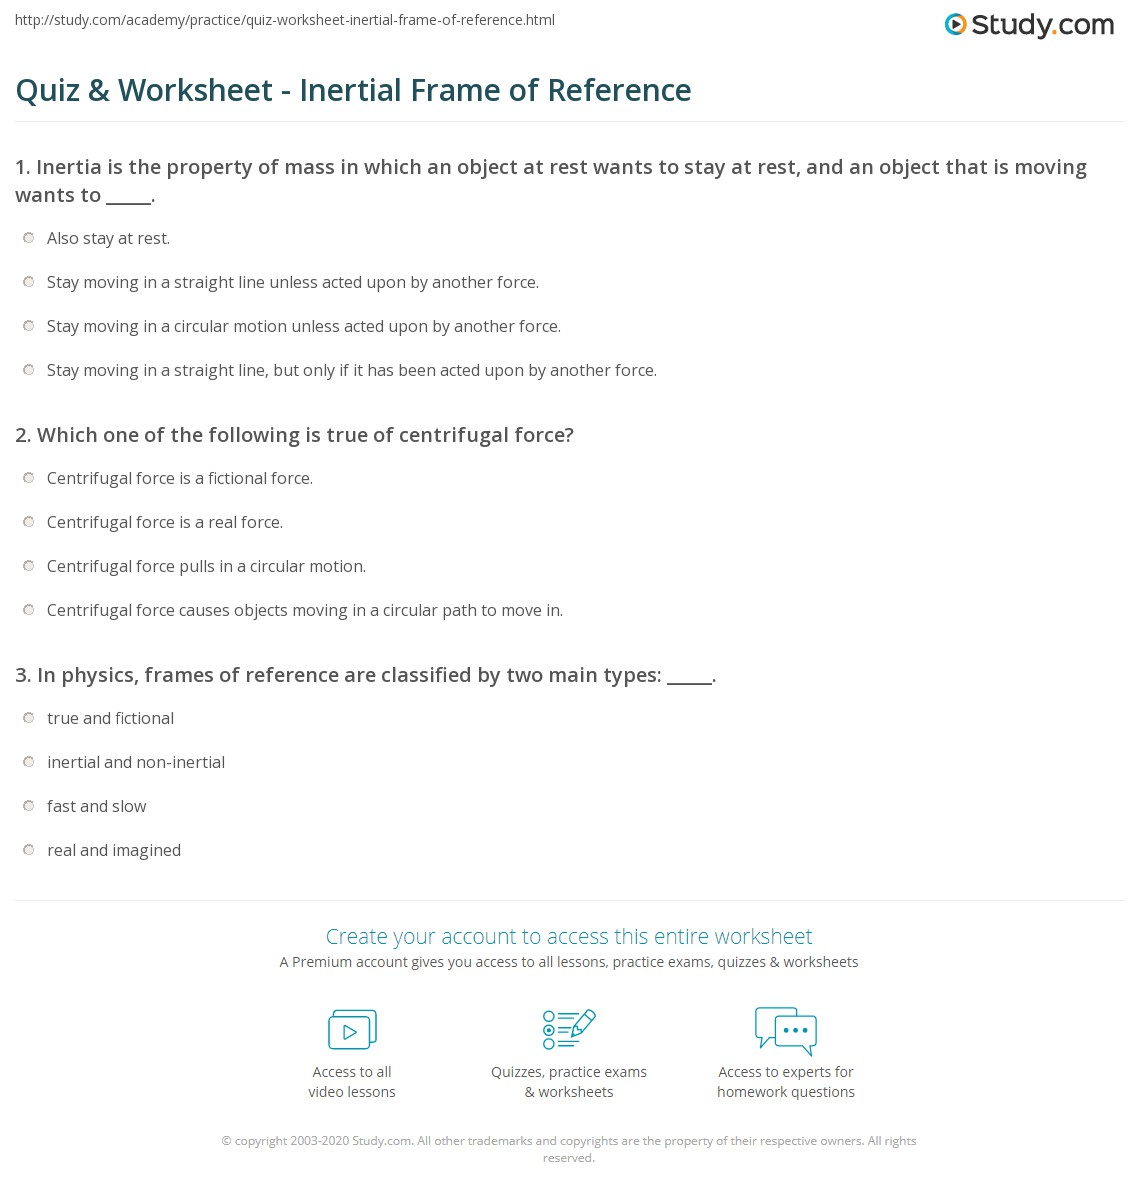 Quiz & Worksheet - Inertial Frame of Reference | Study.com